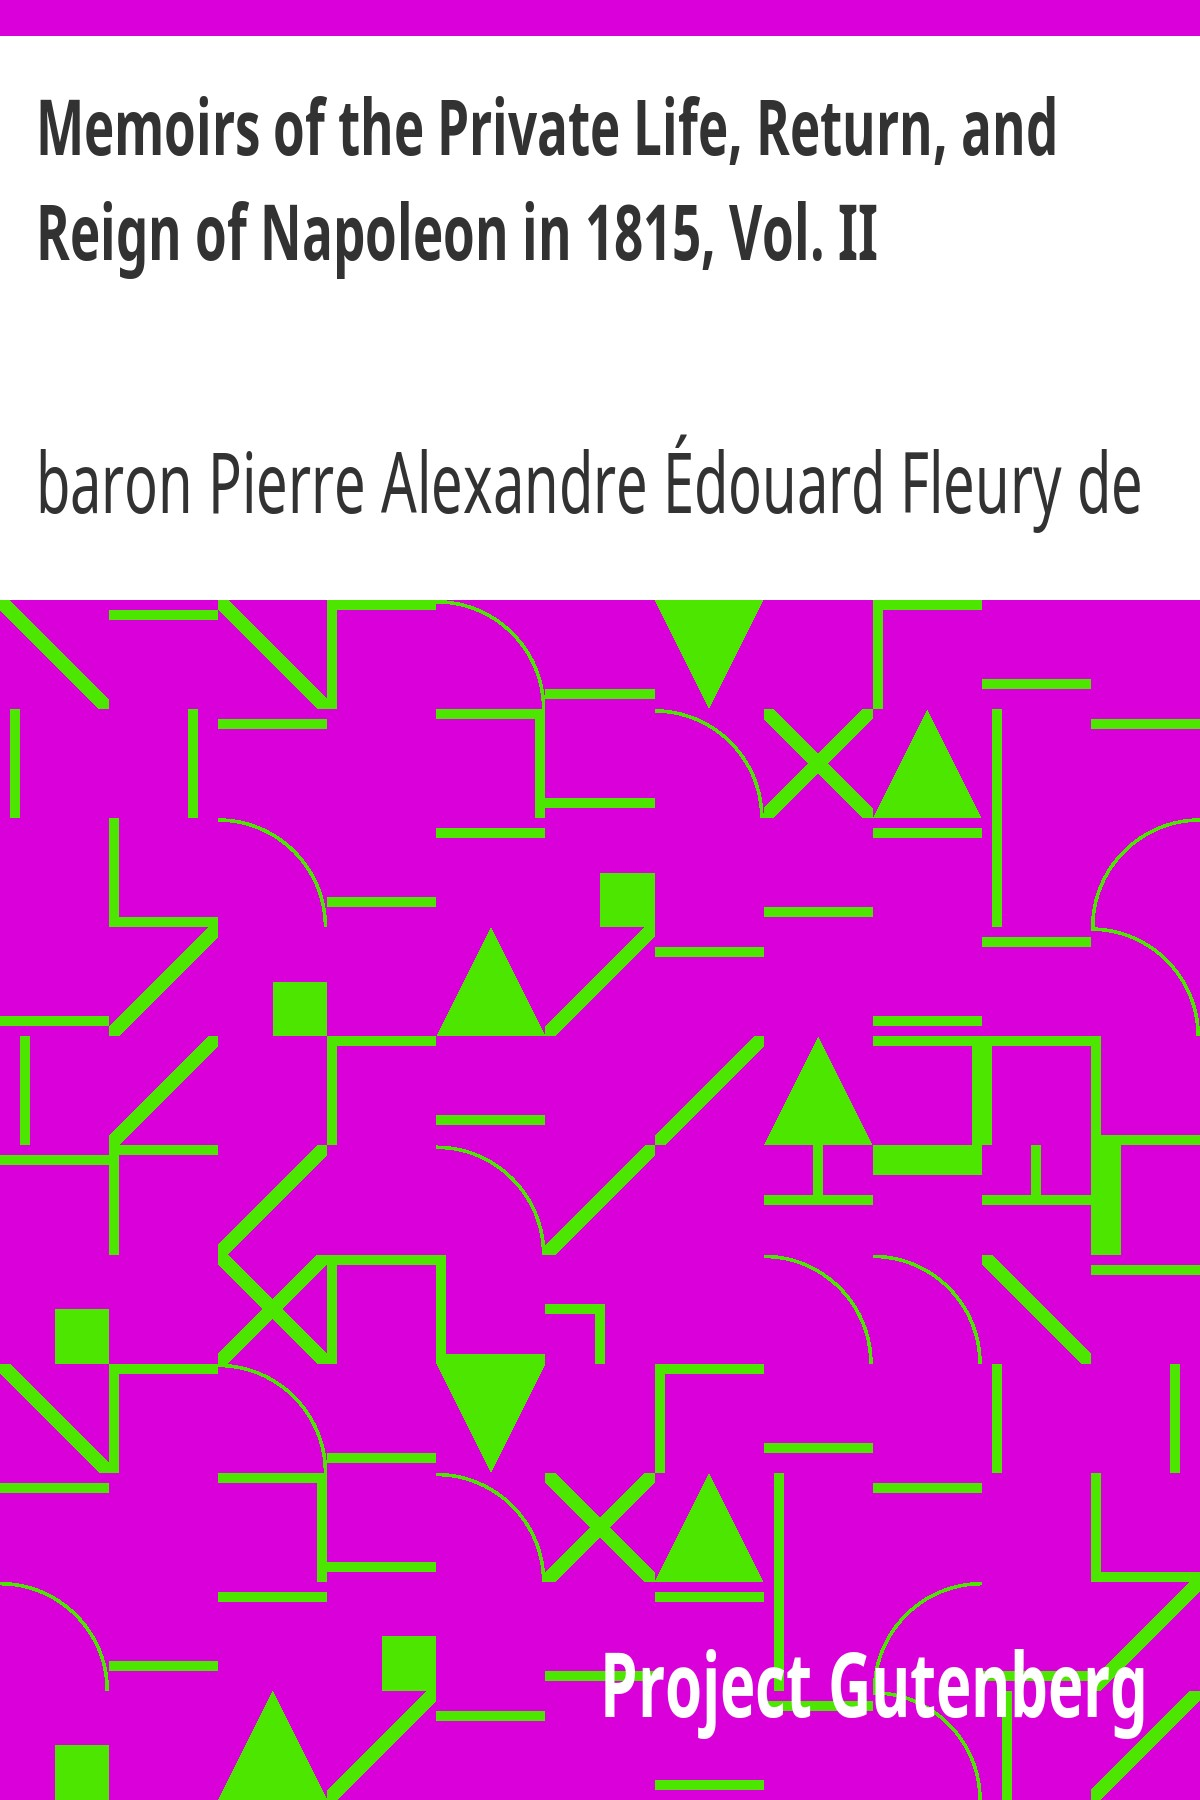 baron Pierre Alexandre Édouard Fleury de Chaboulon Memoirs of the Private Life, Return, and Reign of Napoleon in 1815, Vol. II